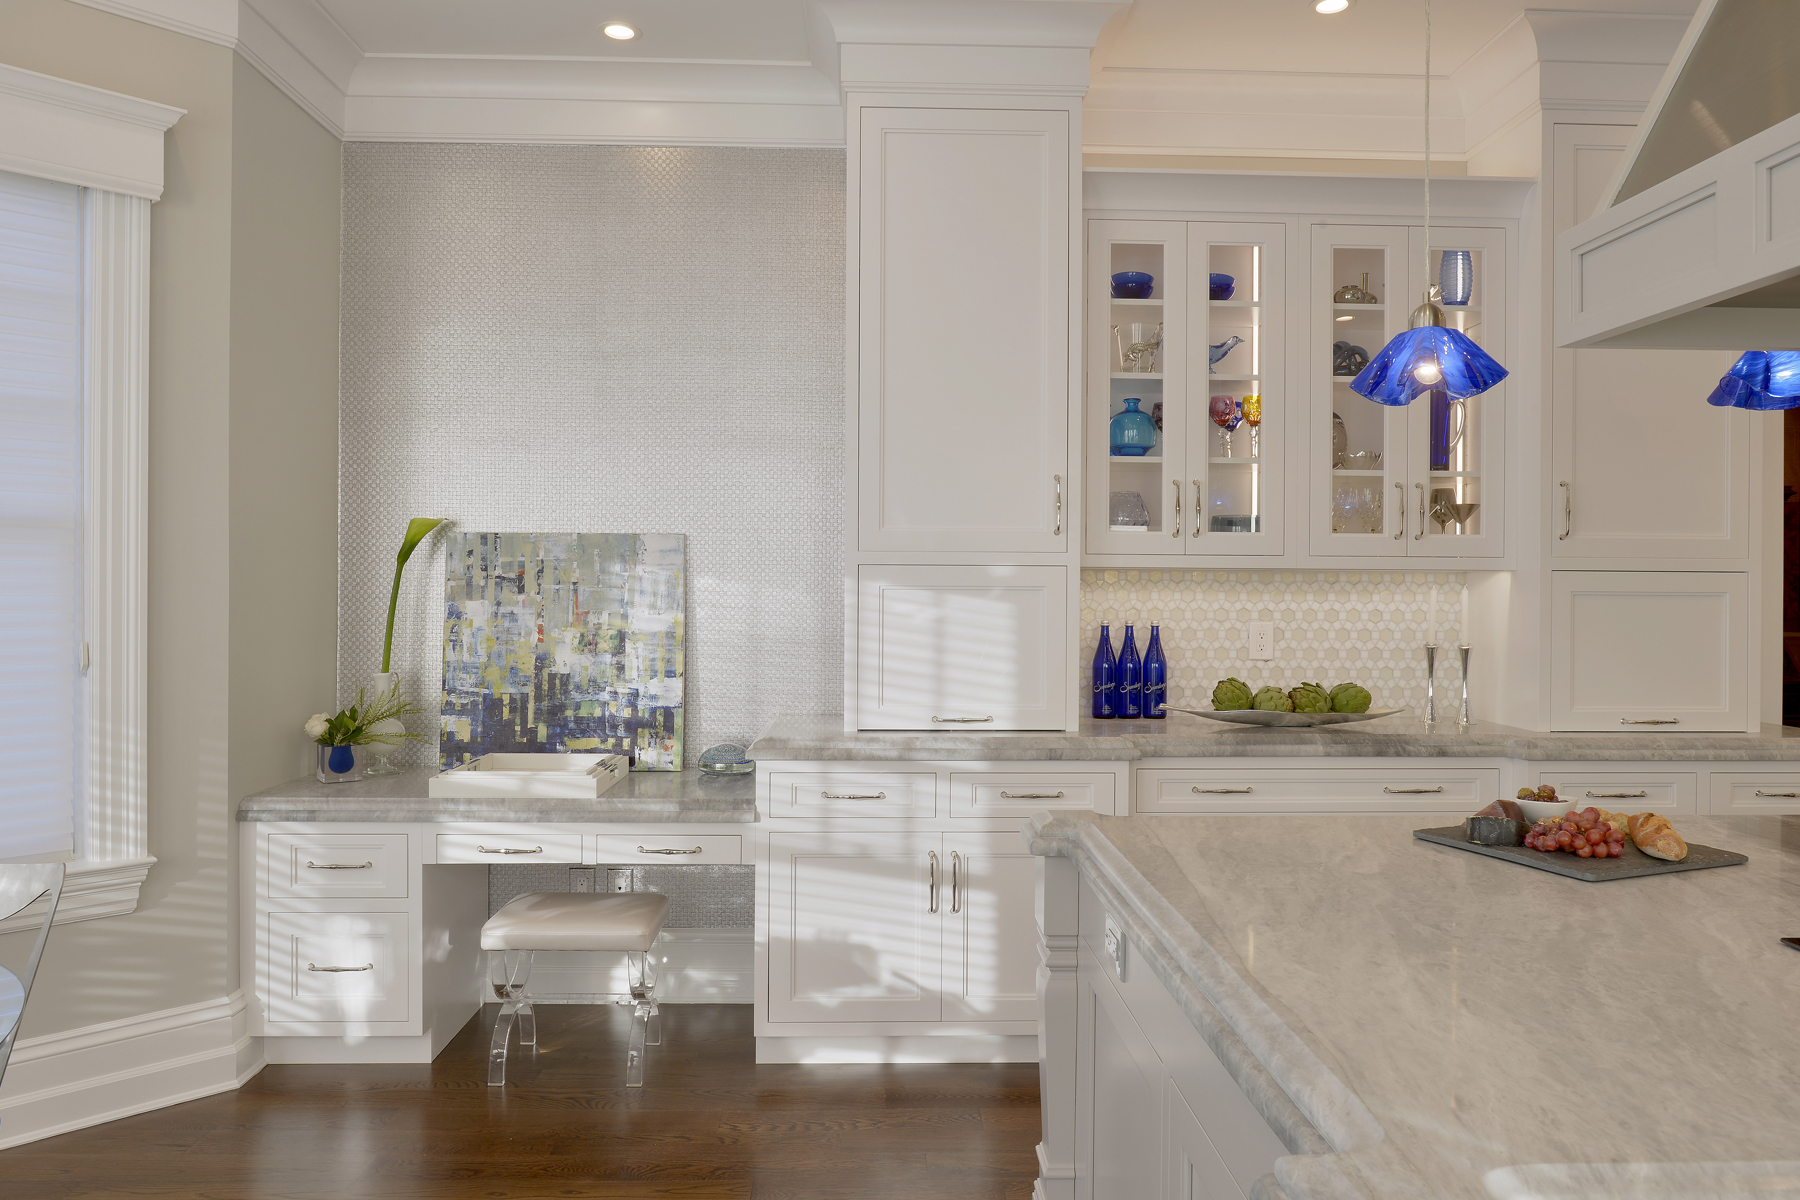 Bright U-shaped kitchen with white painted fully custom Bilotta cabinets, light marble countertops, and desk in kitchen. Cabinet fronts are a mix of full panel and glass front doors. Designed by Fabrice Garson of Bilotta Kitchens.